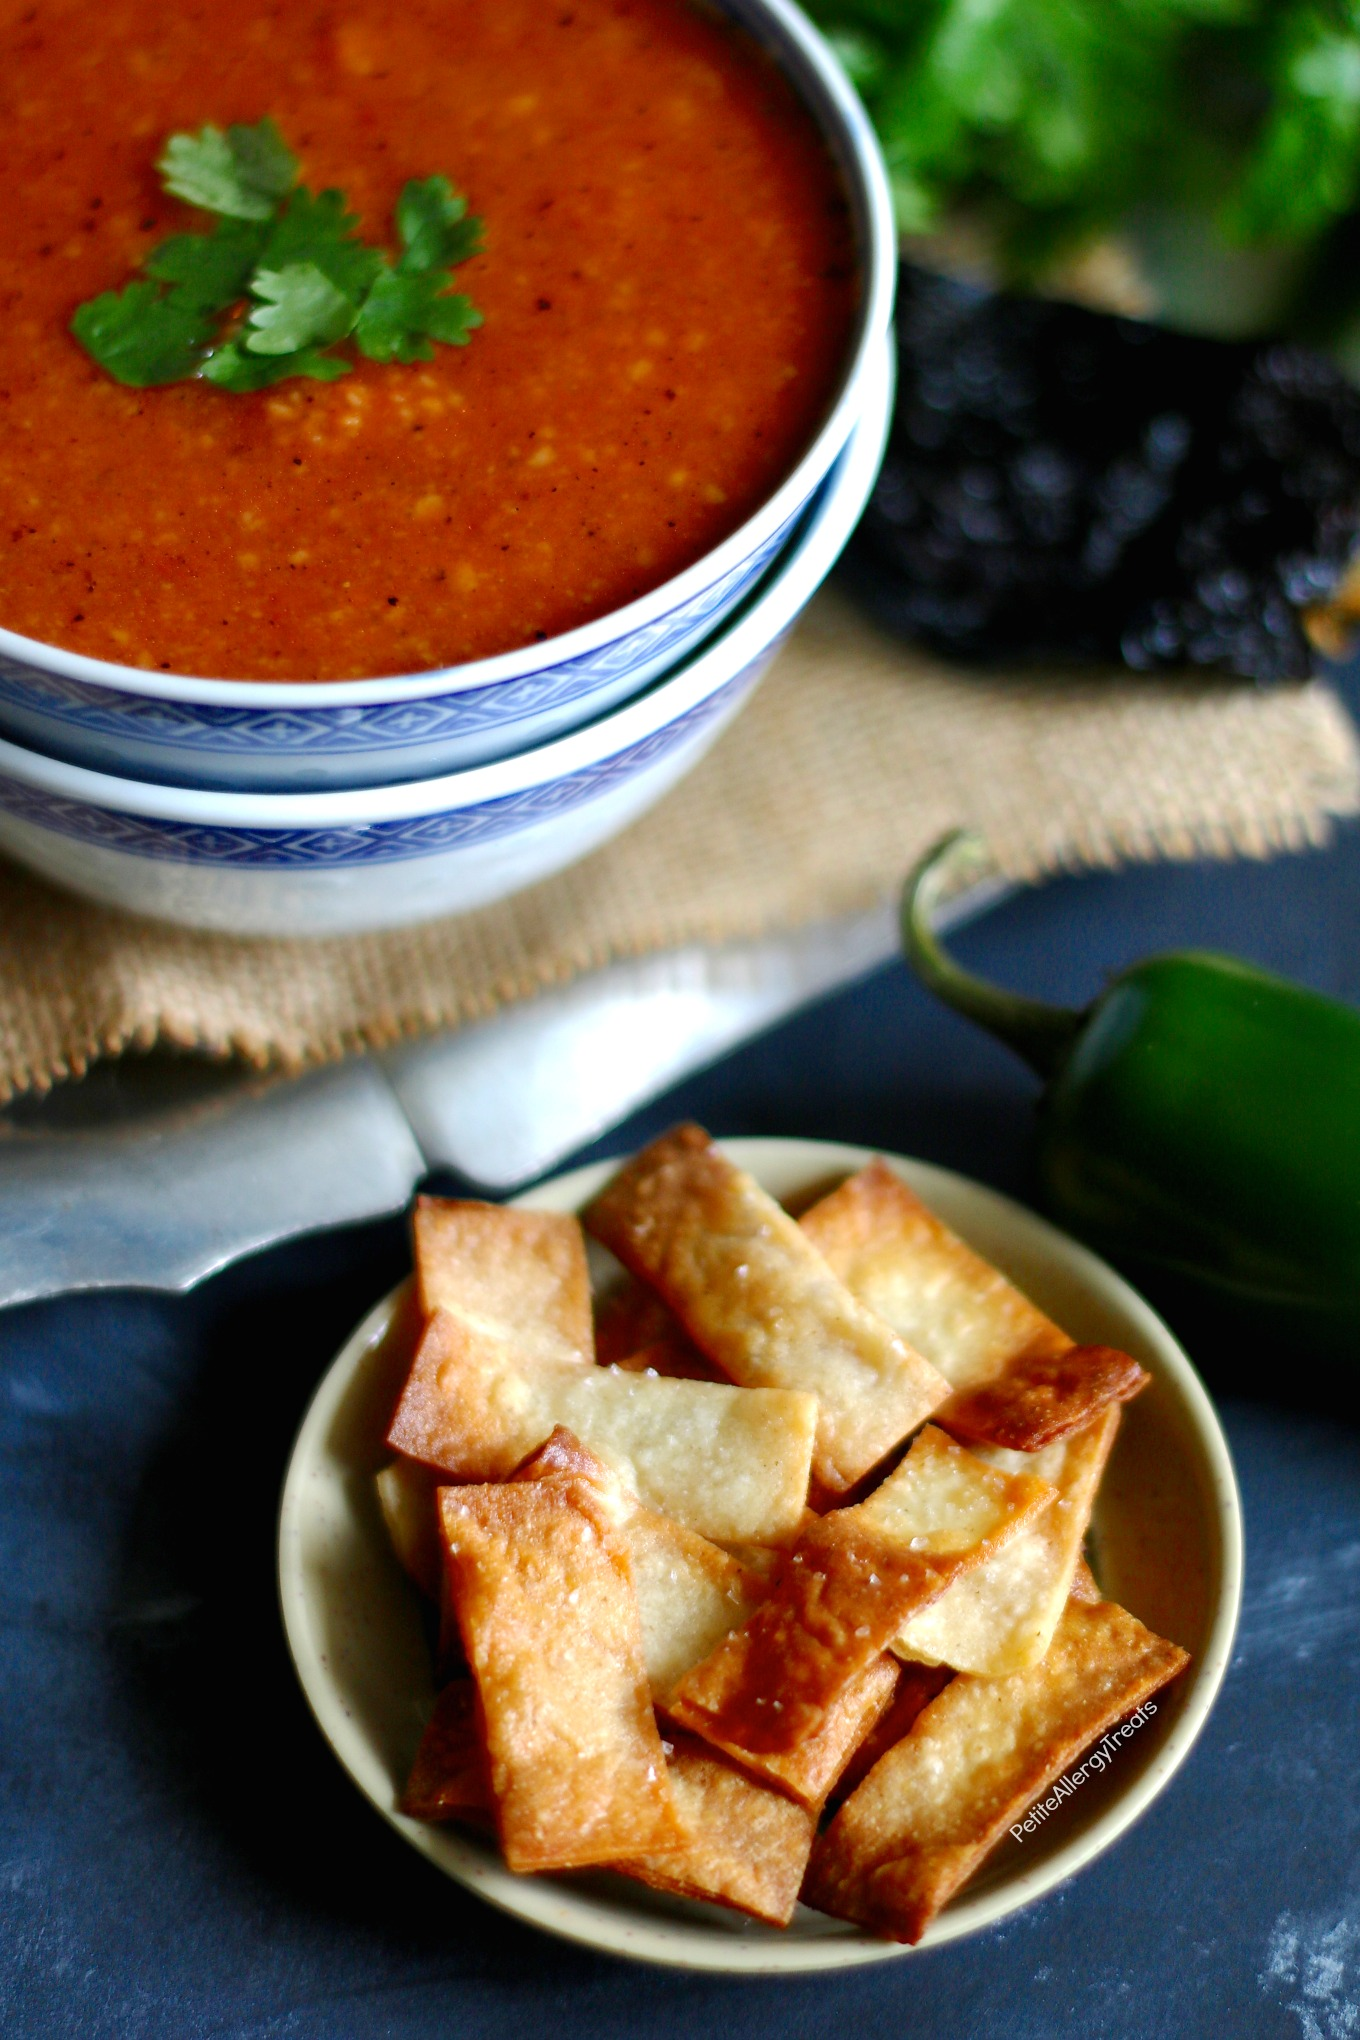 Easy Tortilla Soup recipe (vegan)- Gluten Free flavorful soup with 8 ingredients. Food Allergy friendly dinner is ready!